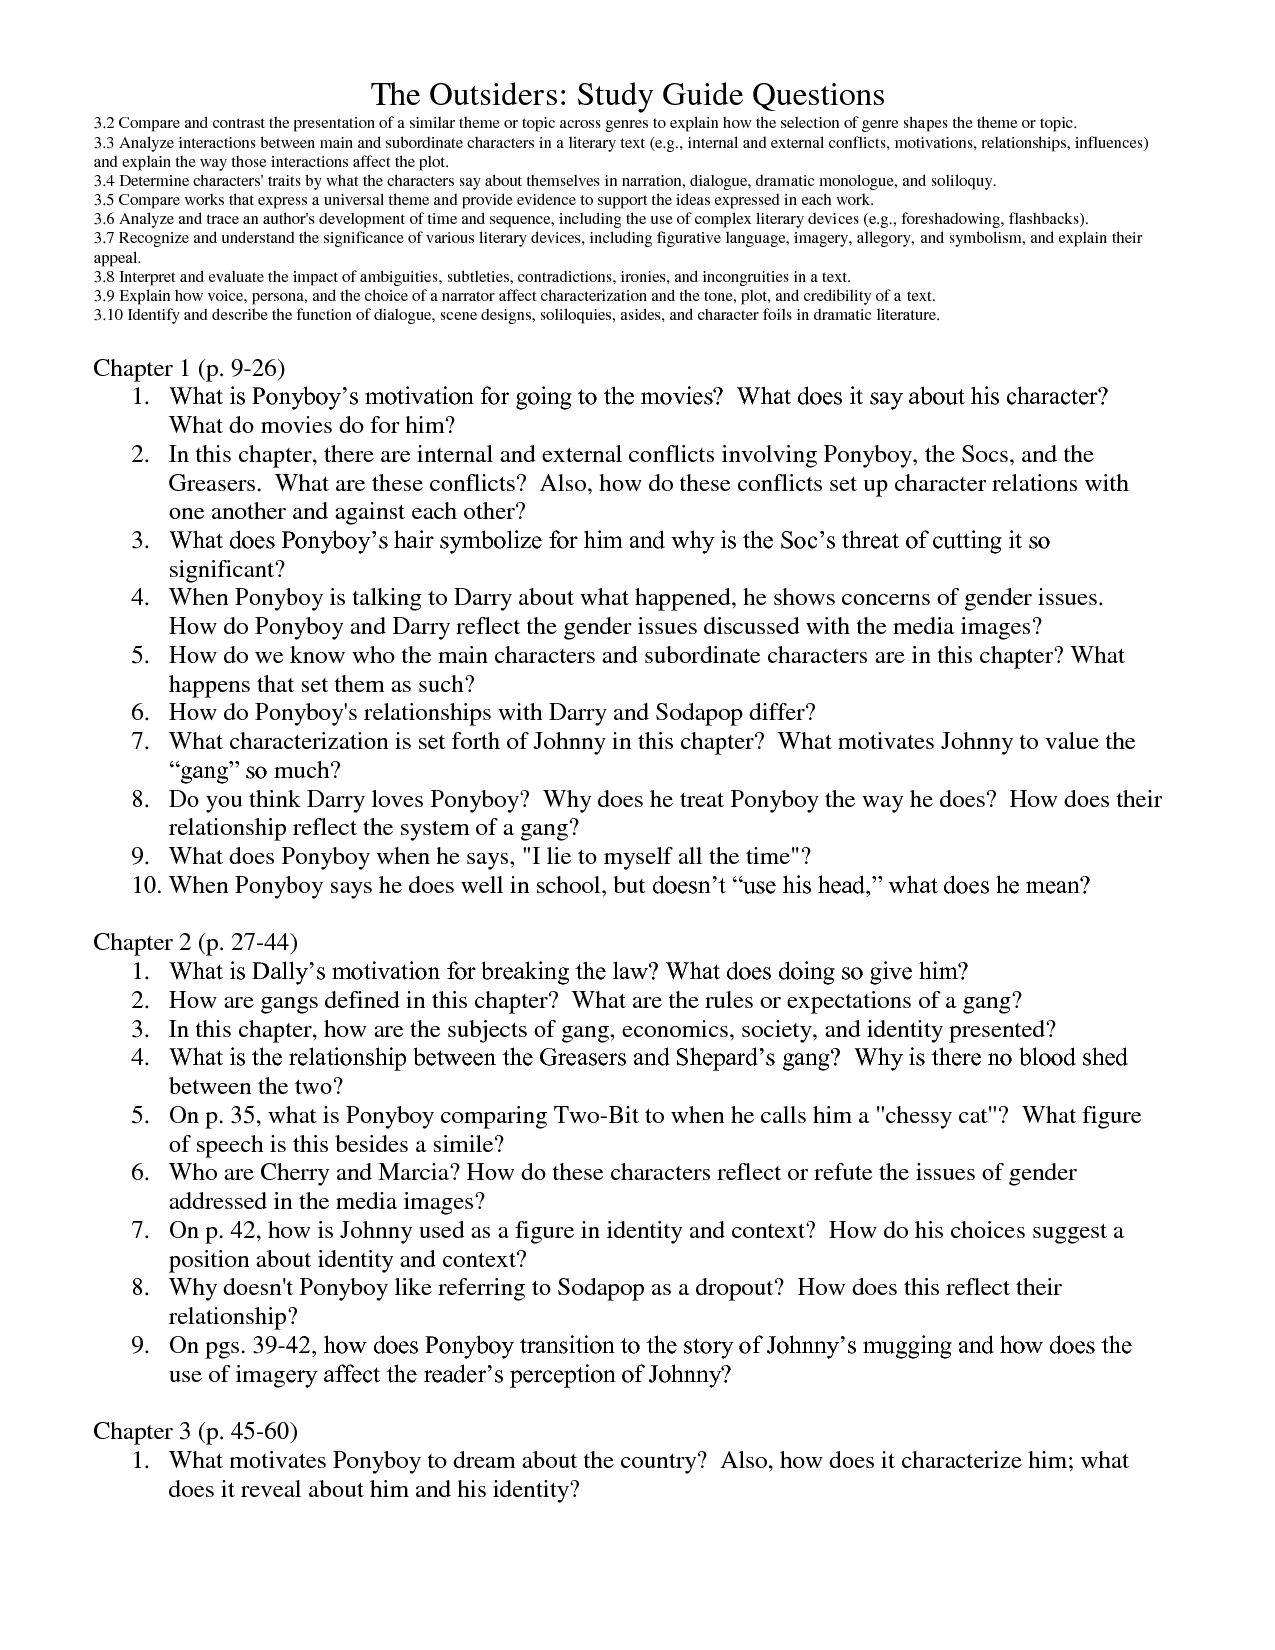 literature study guide Scholastic bookfiles: a reading guide to holes by louis sachar/by monique vescia p cm summary: discusses the writing, characters, plot american literature for children, is awarded annually by the children's librarians of the american library association another.